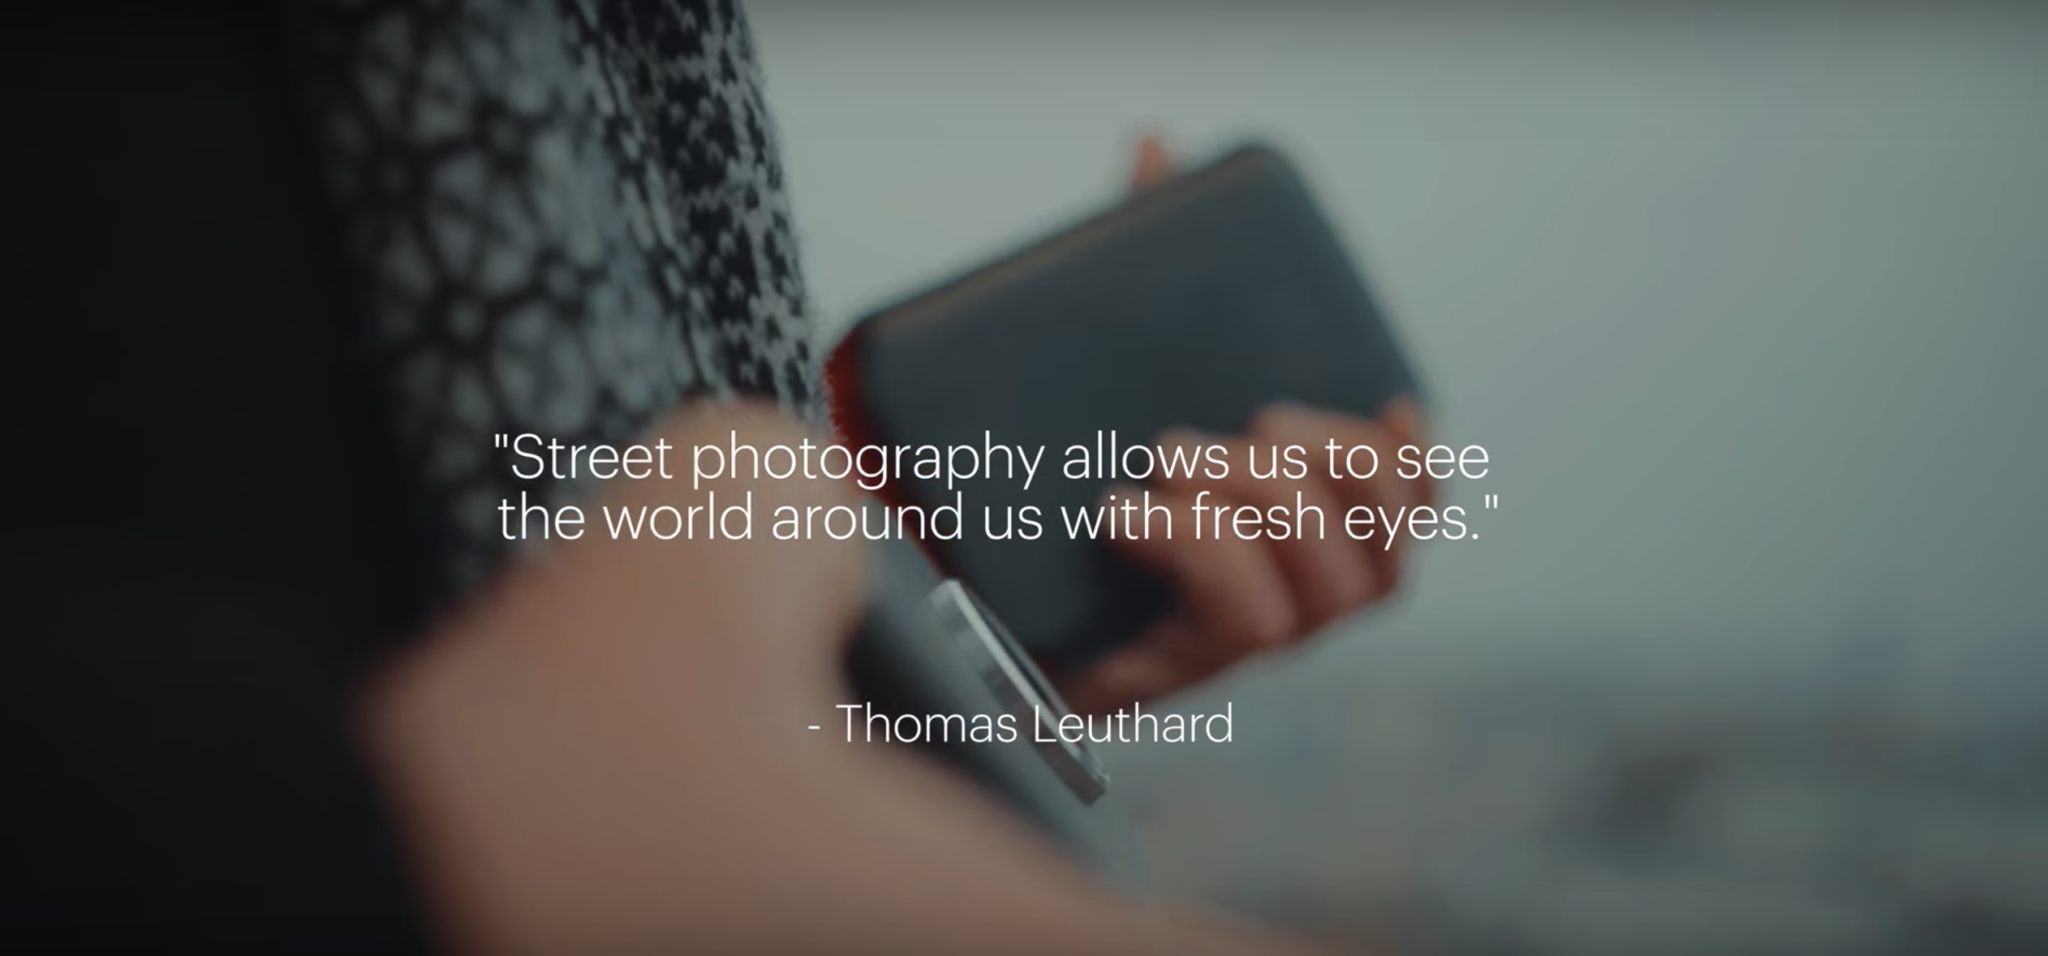 Thomas Leuthard Uses the Kodak Ektra for Street Photography